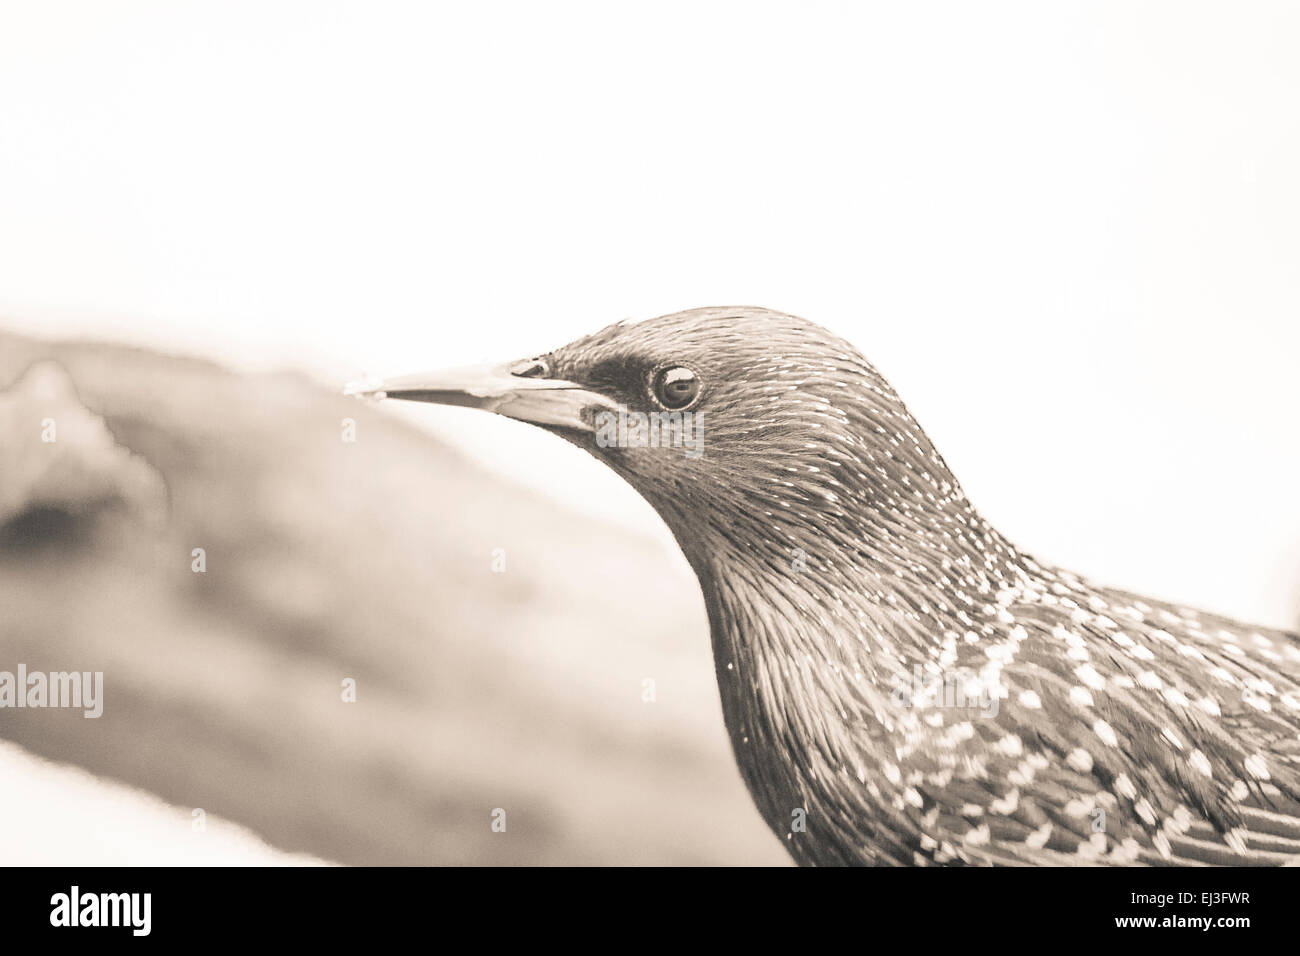 lightly tinted monochrome image of starling close up with vintage duo tone effect - Stock Image